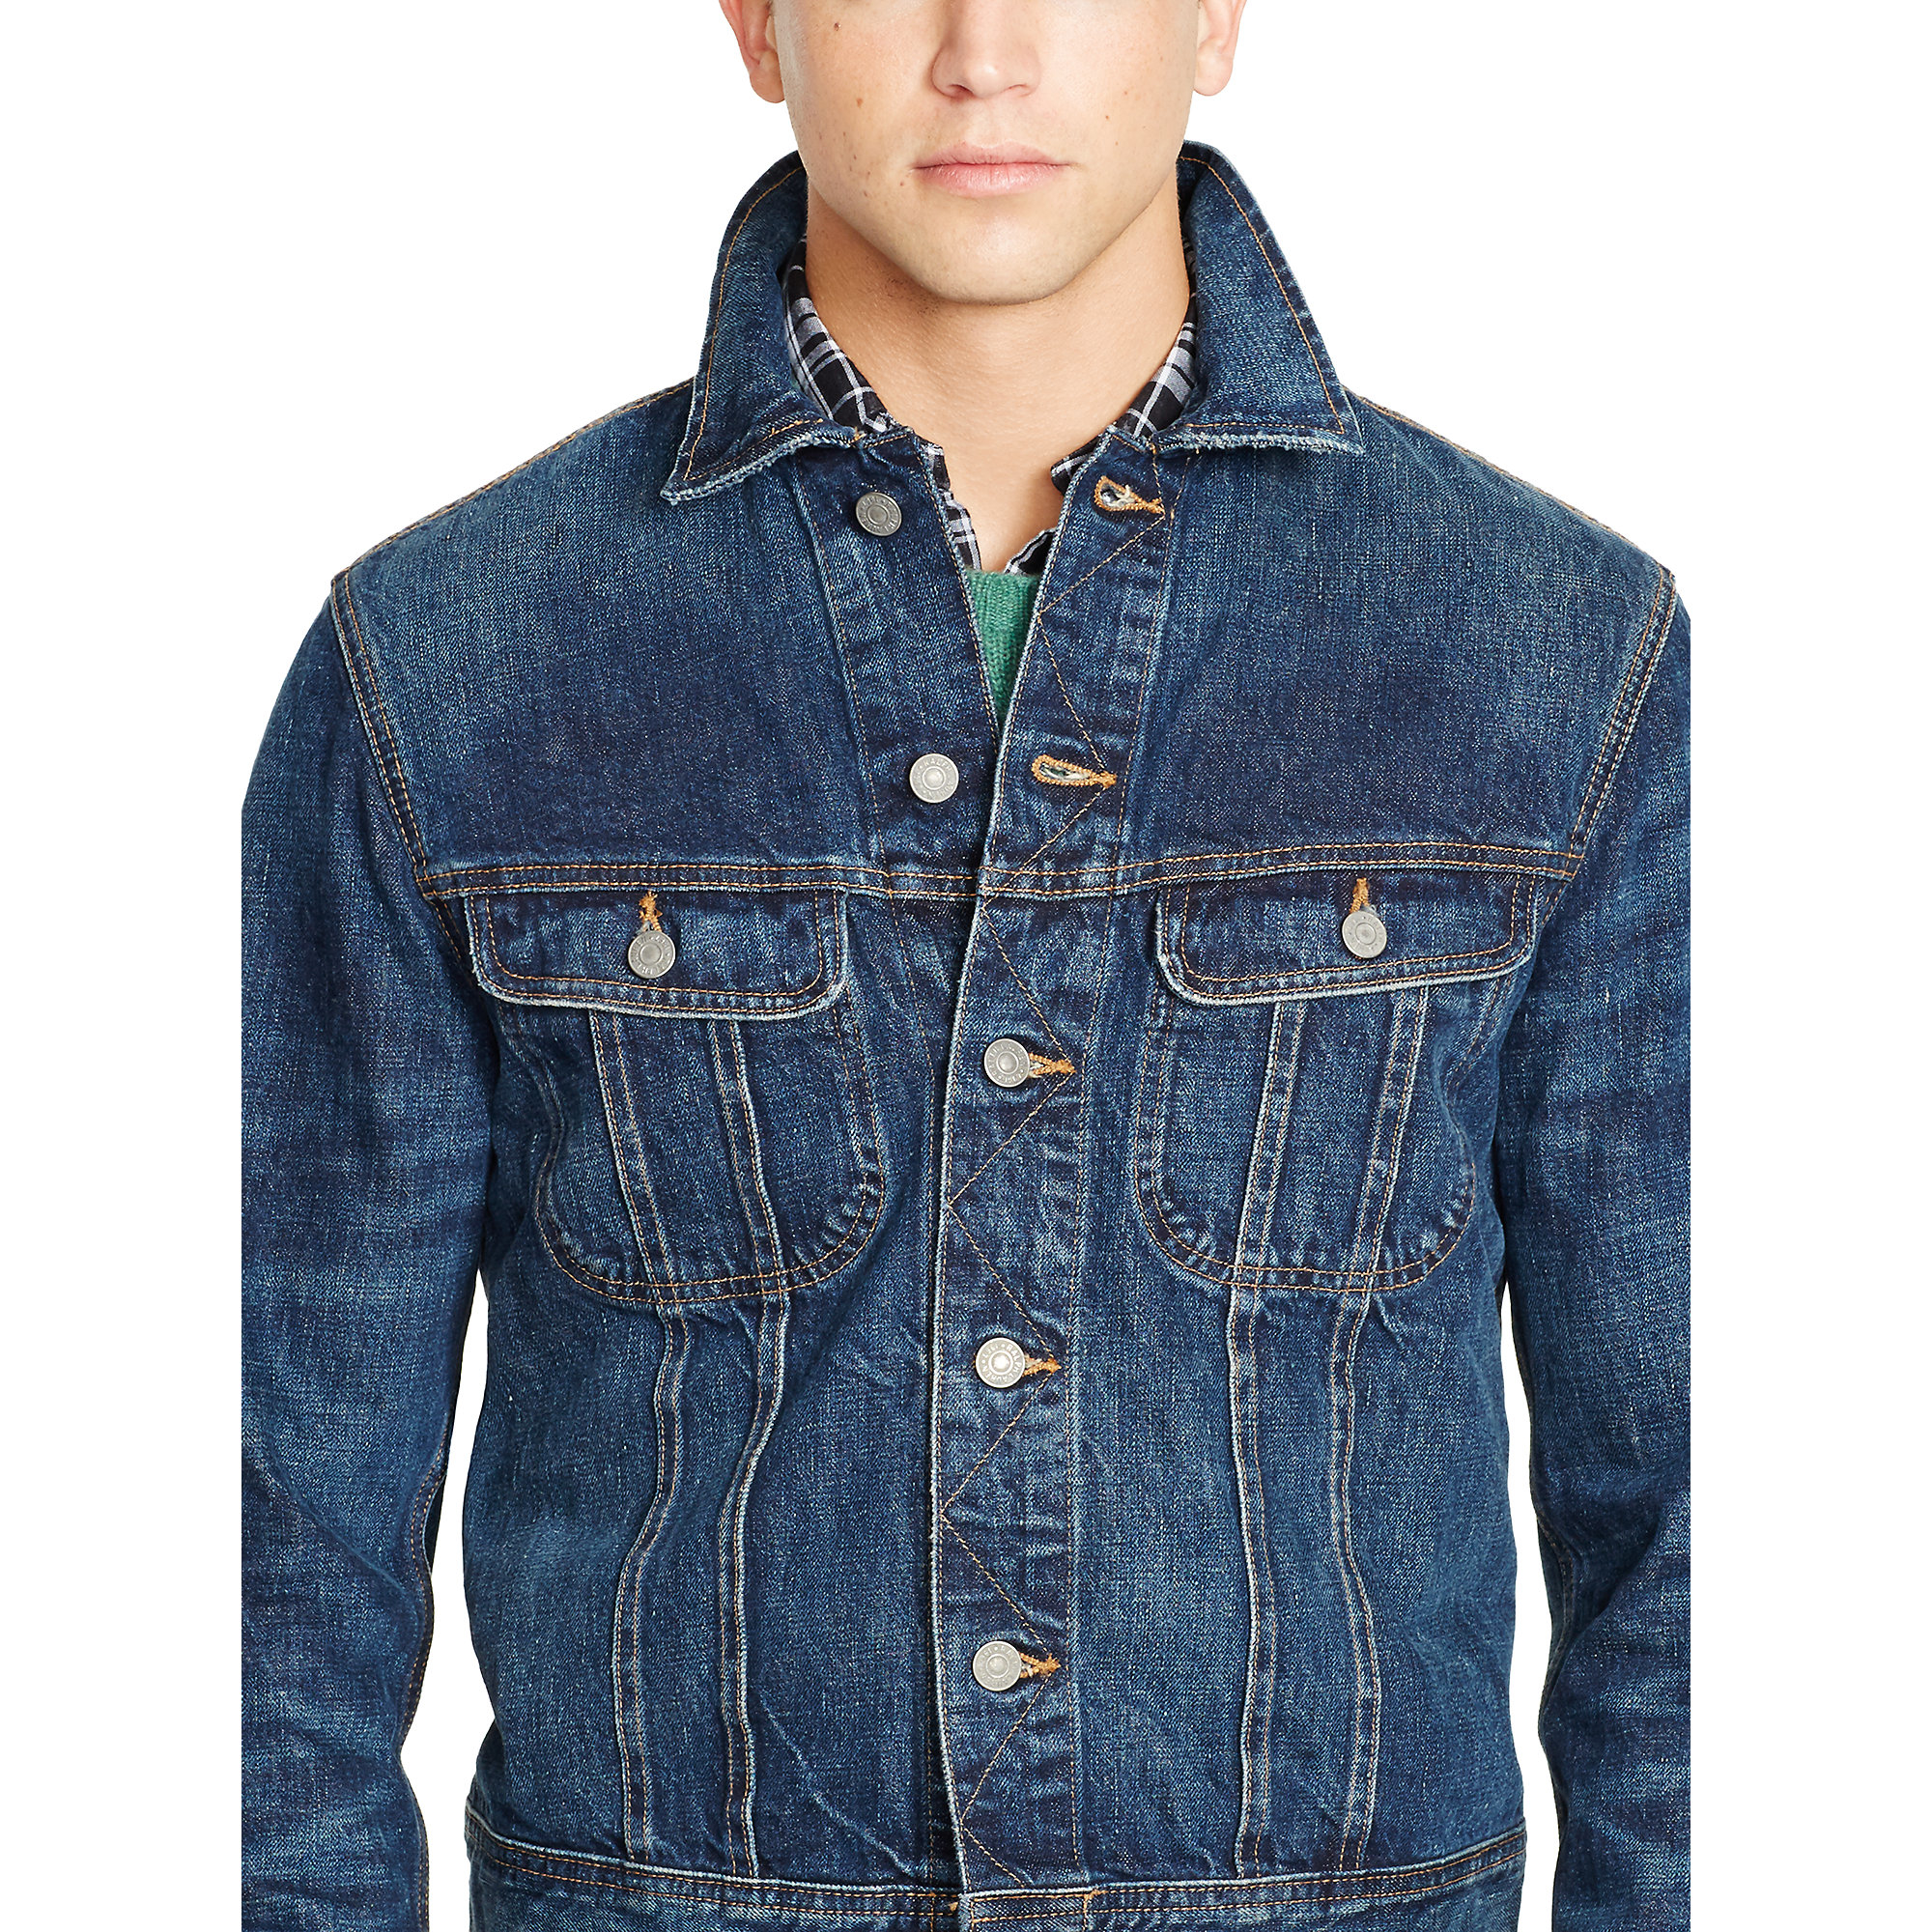 Lyst - Polo Ralph Lauren Denim Trucker Jacket in Blue for Men